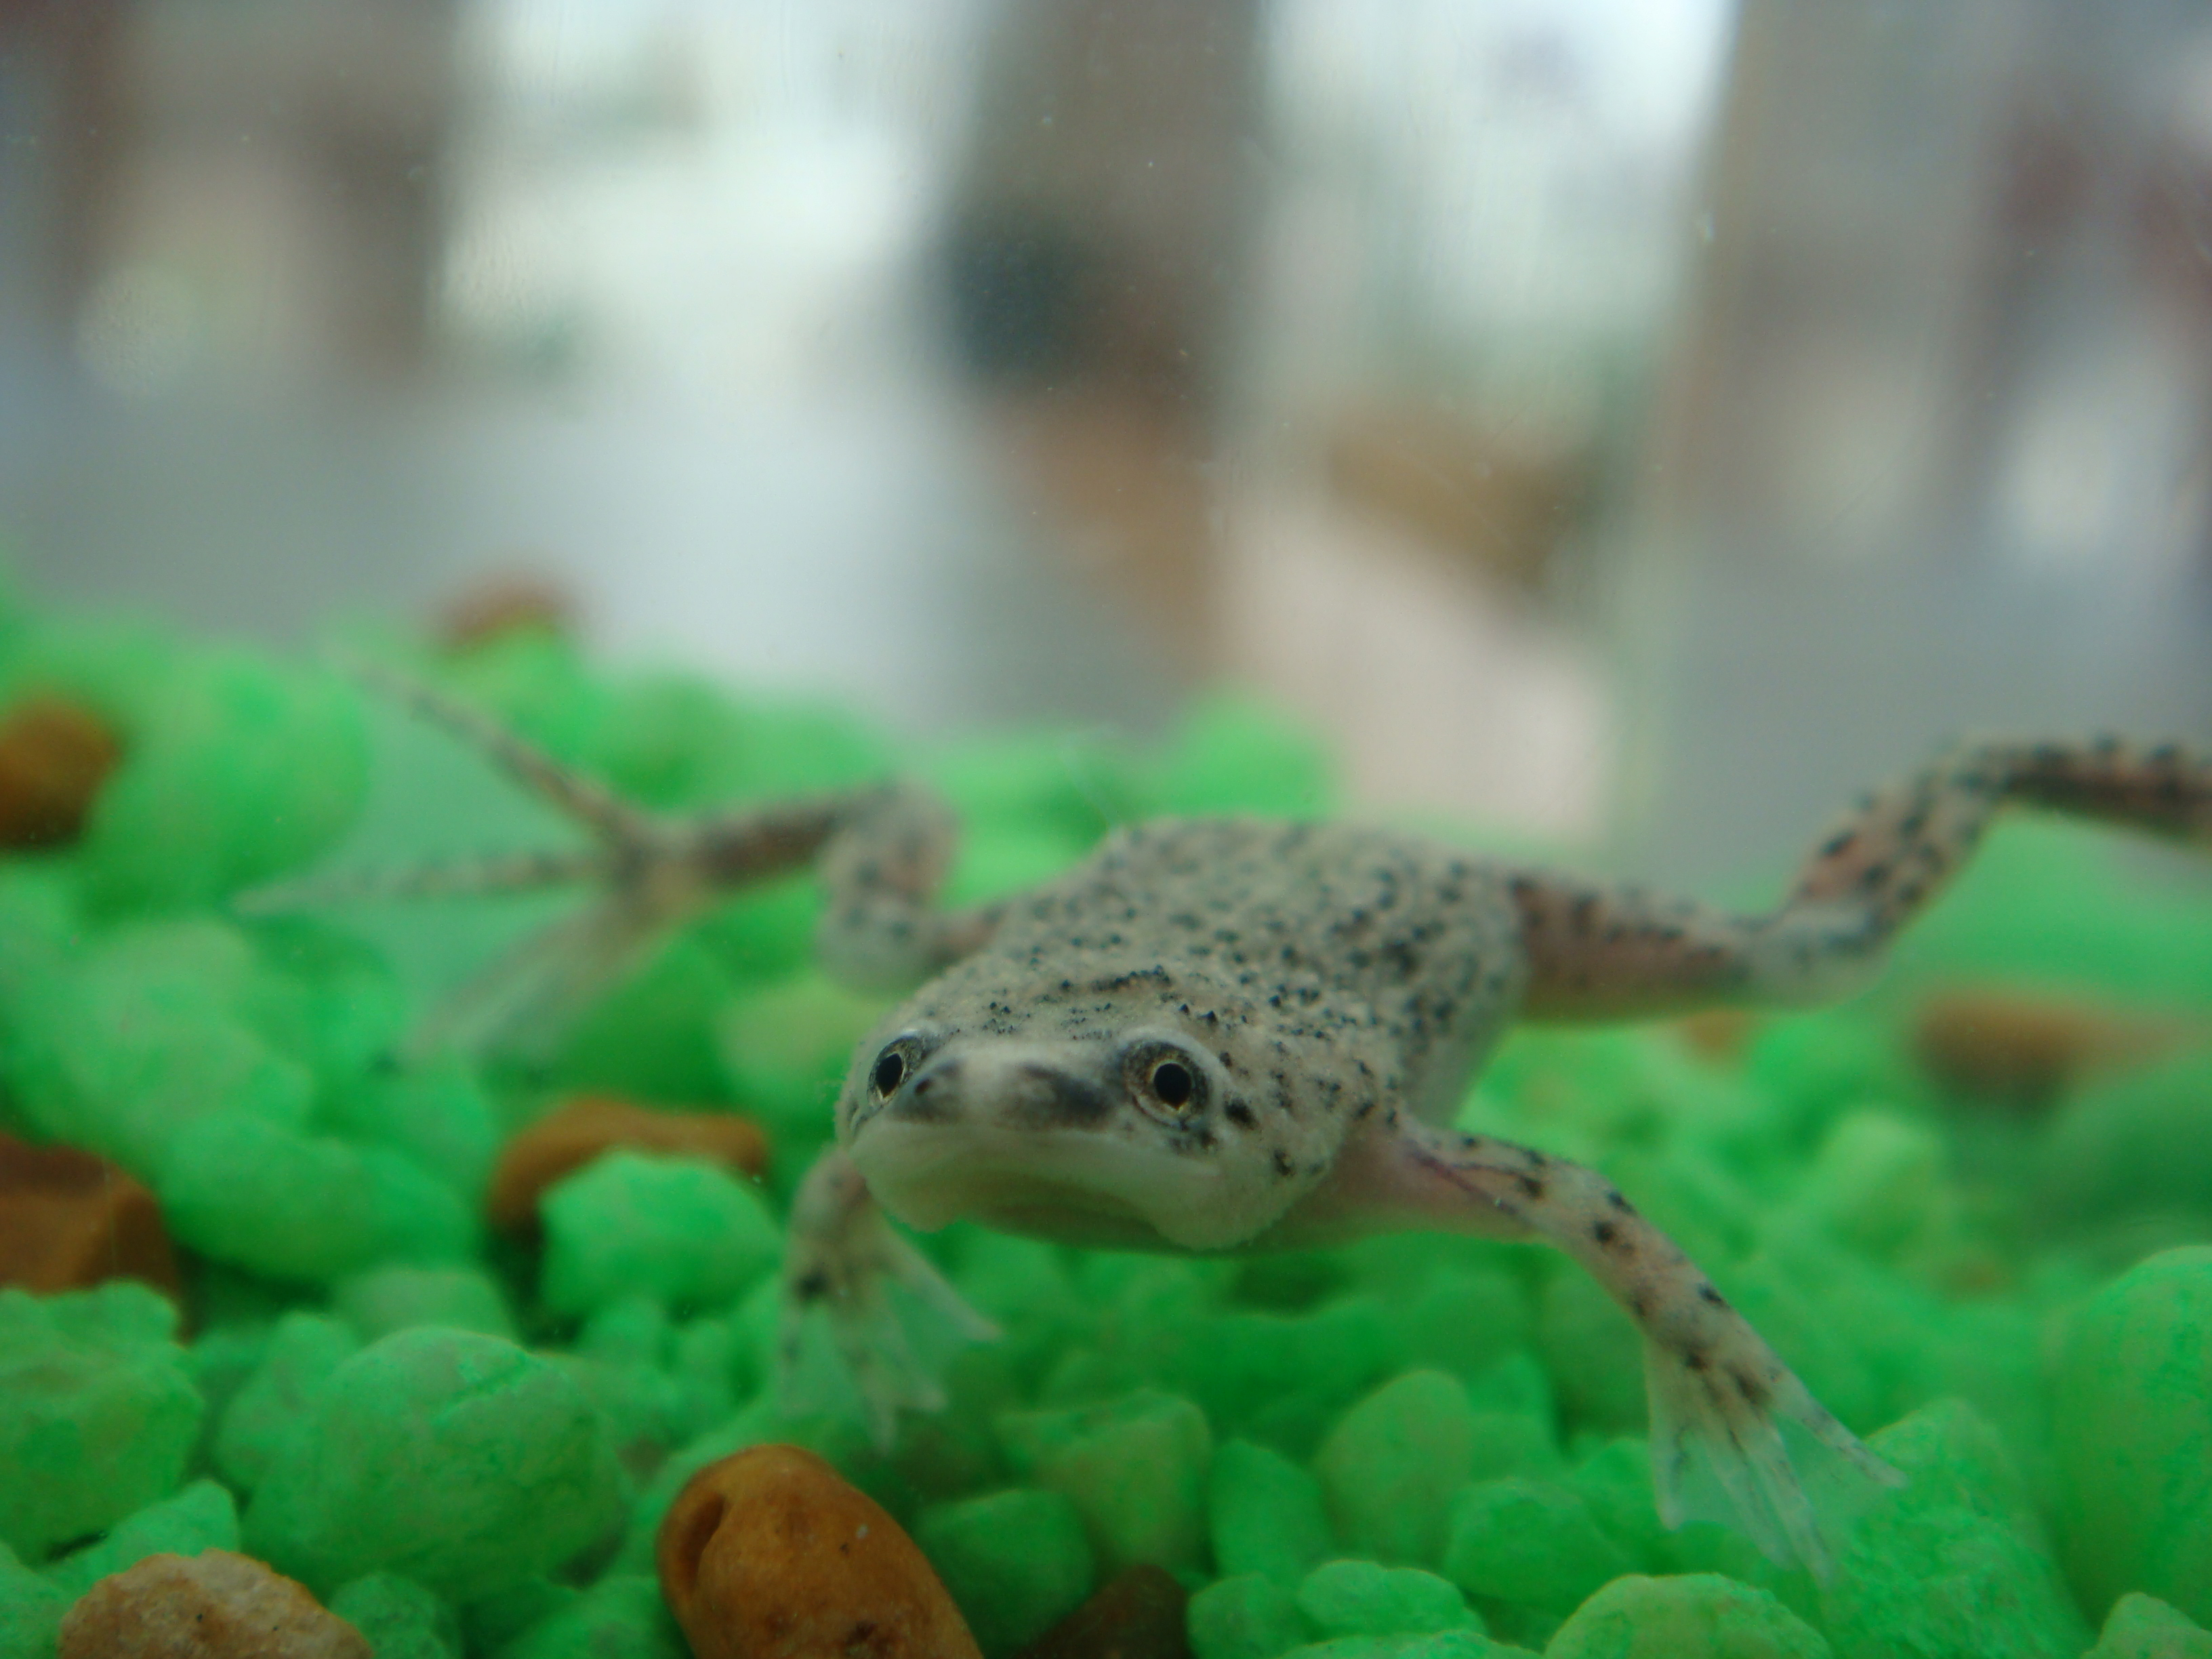 Water Frogs As Pets Related Keywords & Suggestions - Water Frogs As ...